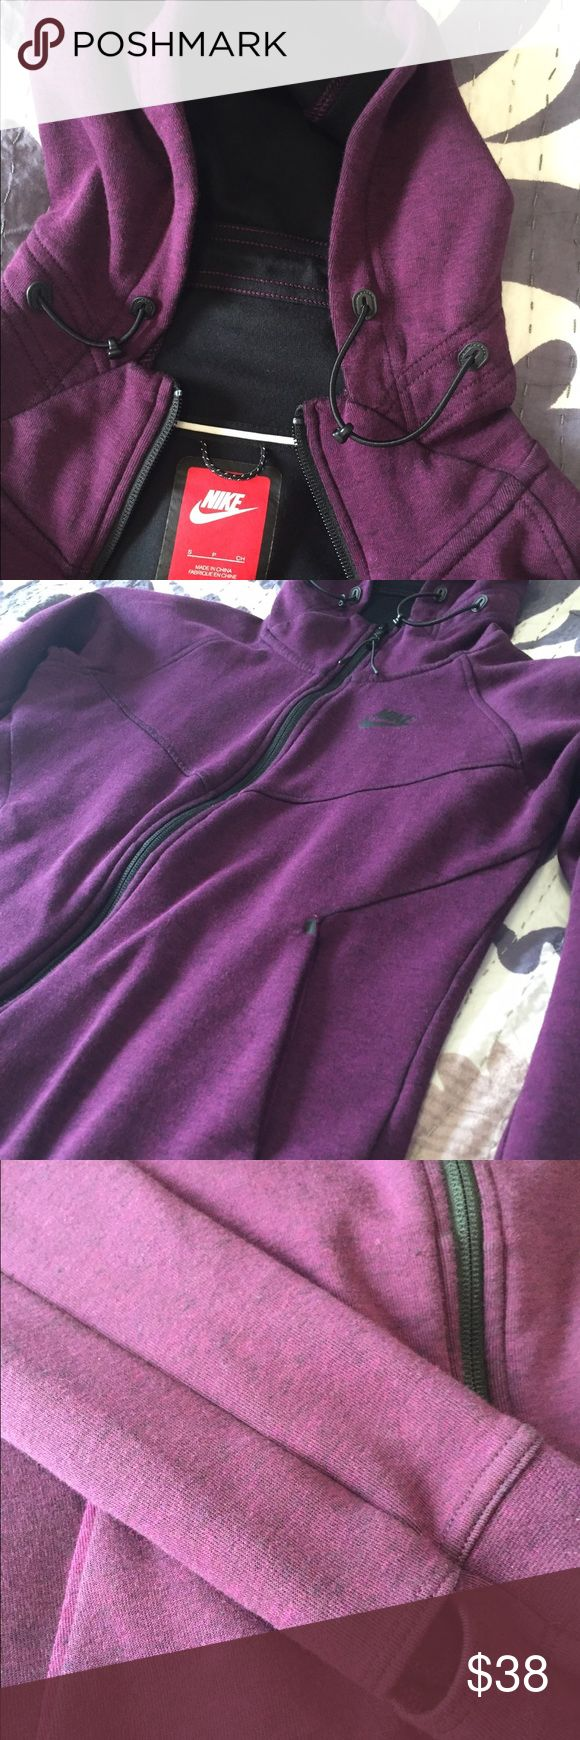 Nike heathered purple zip up hoodie S Beautiful and rare Nike hooded zip up with thumb holes in size small. EUC! As shown in the last picture, there looks like there is a tiny little snag on the back side of one of the sleeves. Nike Tops Sweatshirts & Hoodies